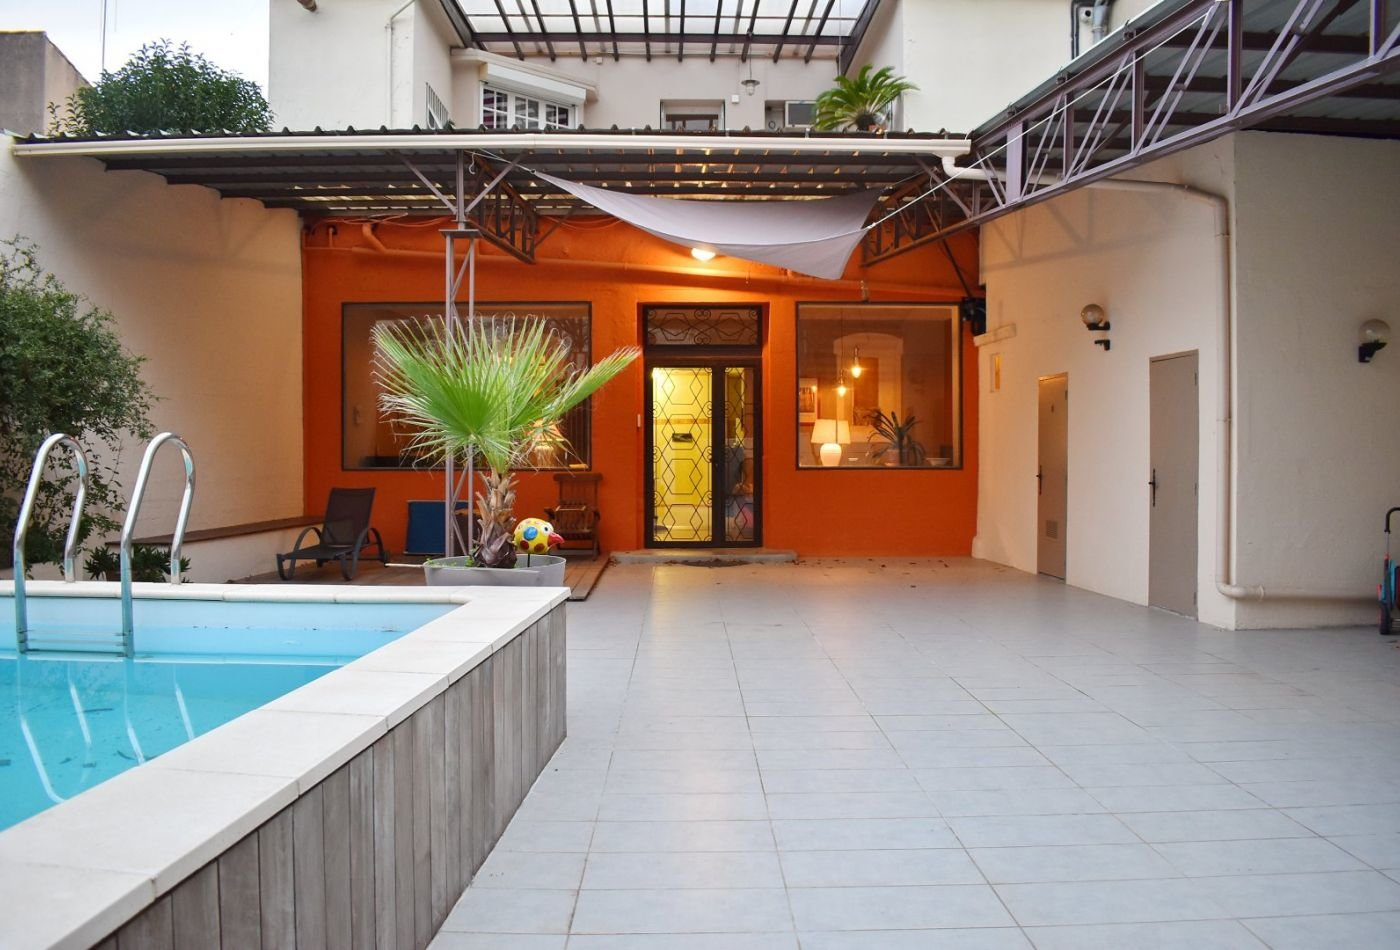 Townhouse med pool i Béziers